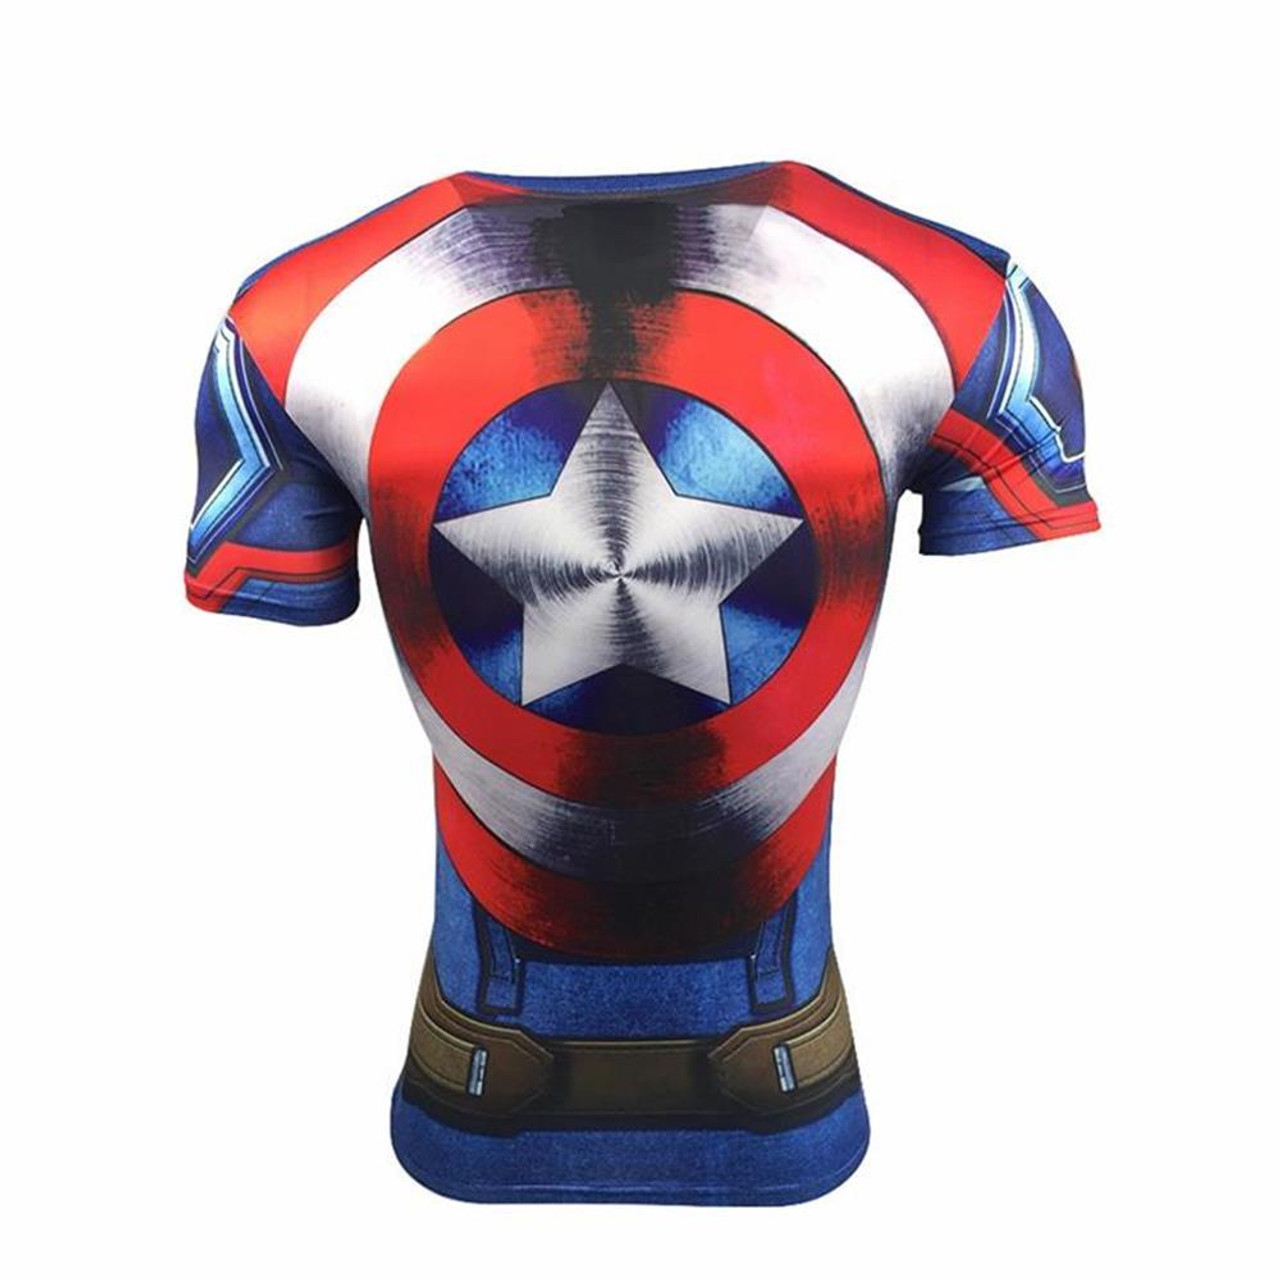 aa0fea43e66 ... 2018 Superman Captain America Sports T-Shirt 3D Print Running Fitness  Wear Stretch GYM Compression ...